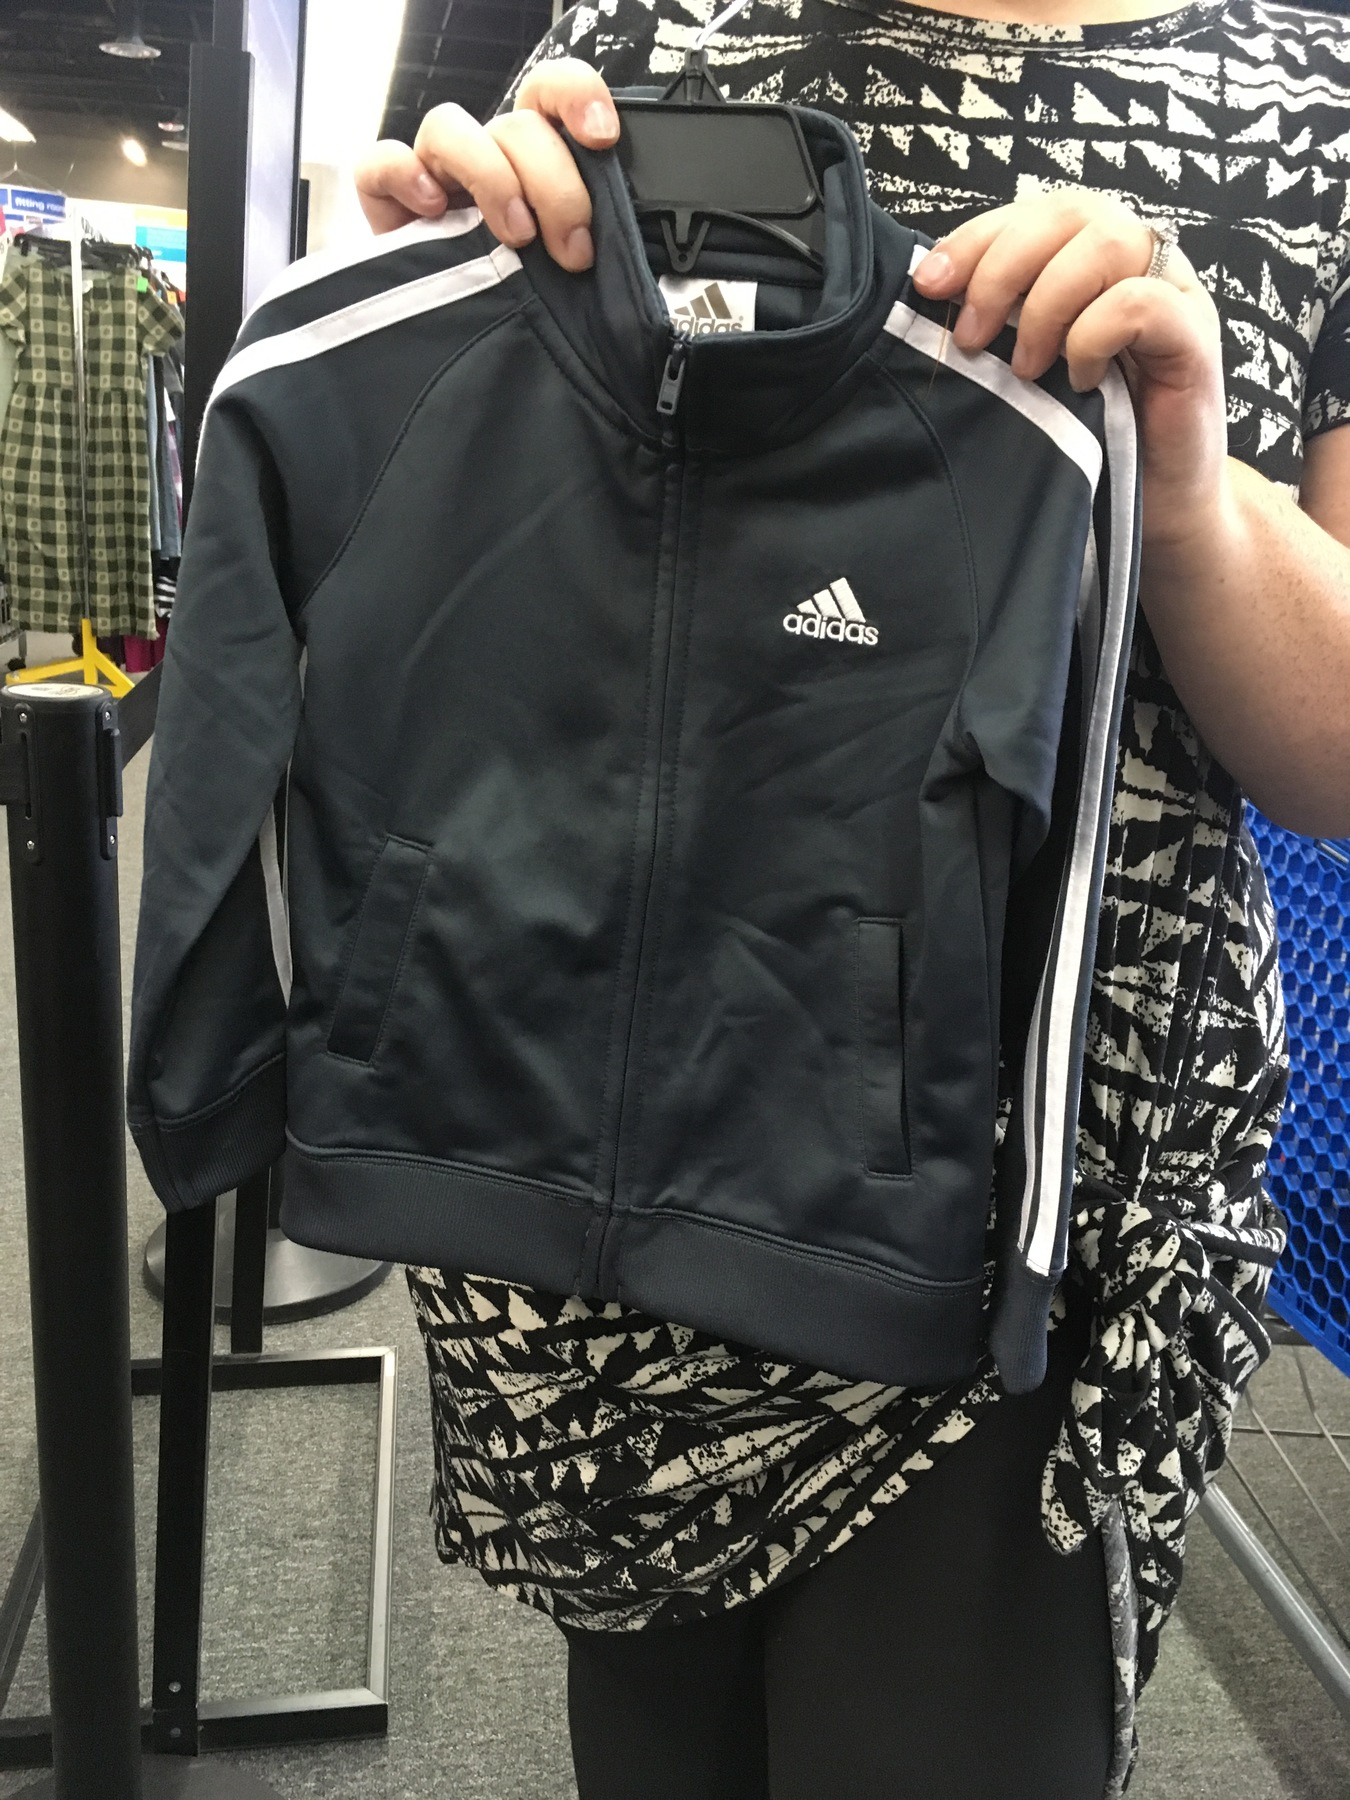 Adidas youth jacket found at Sully Station Goodwill